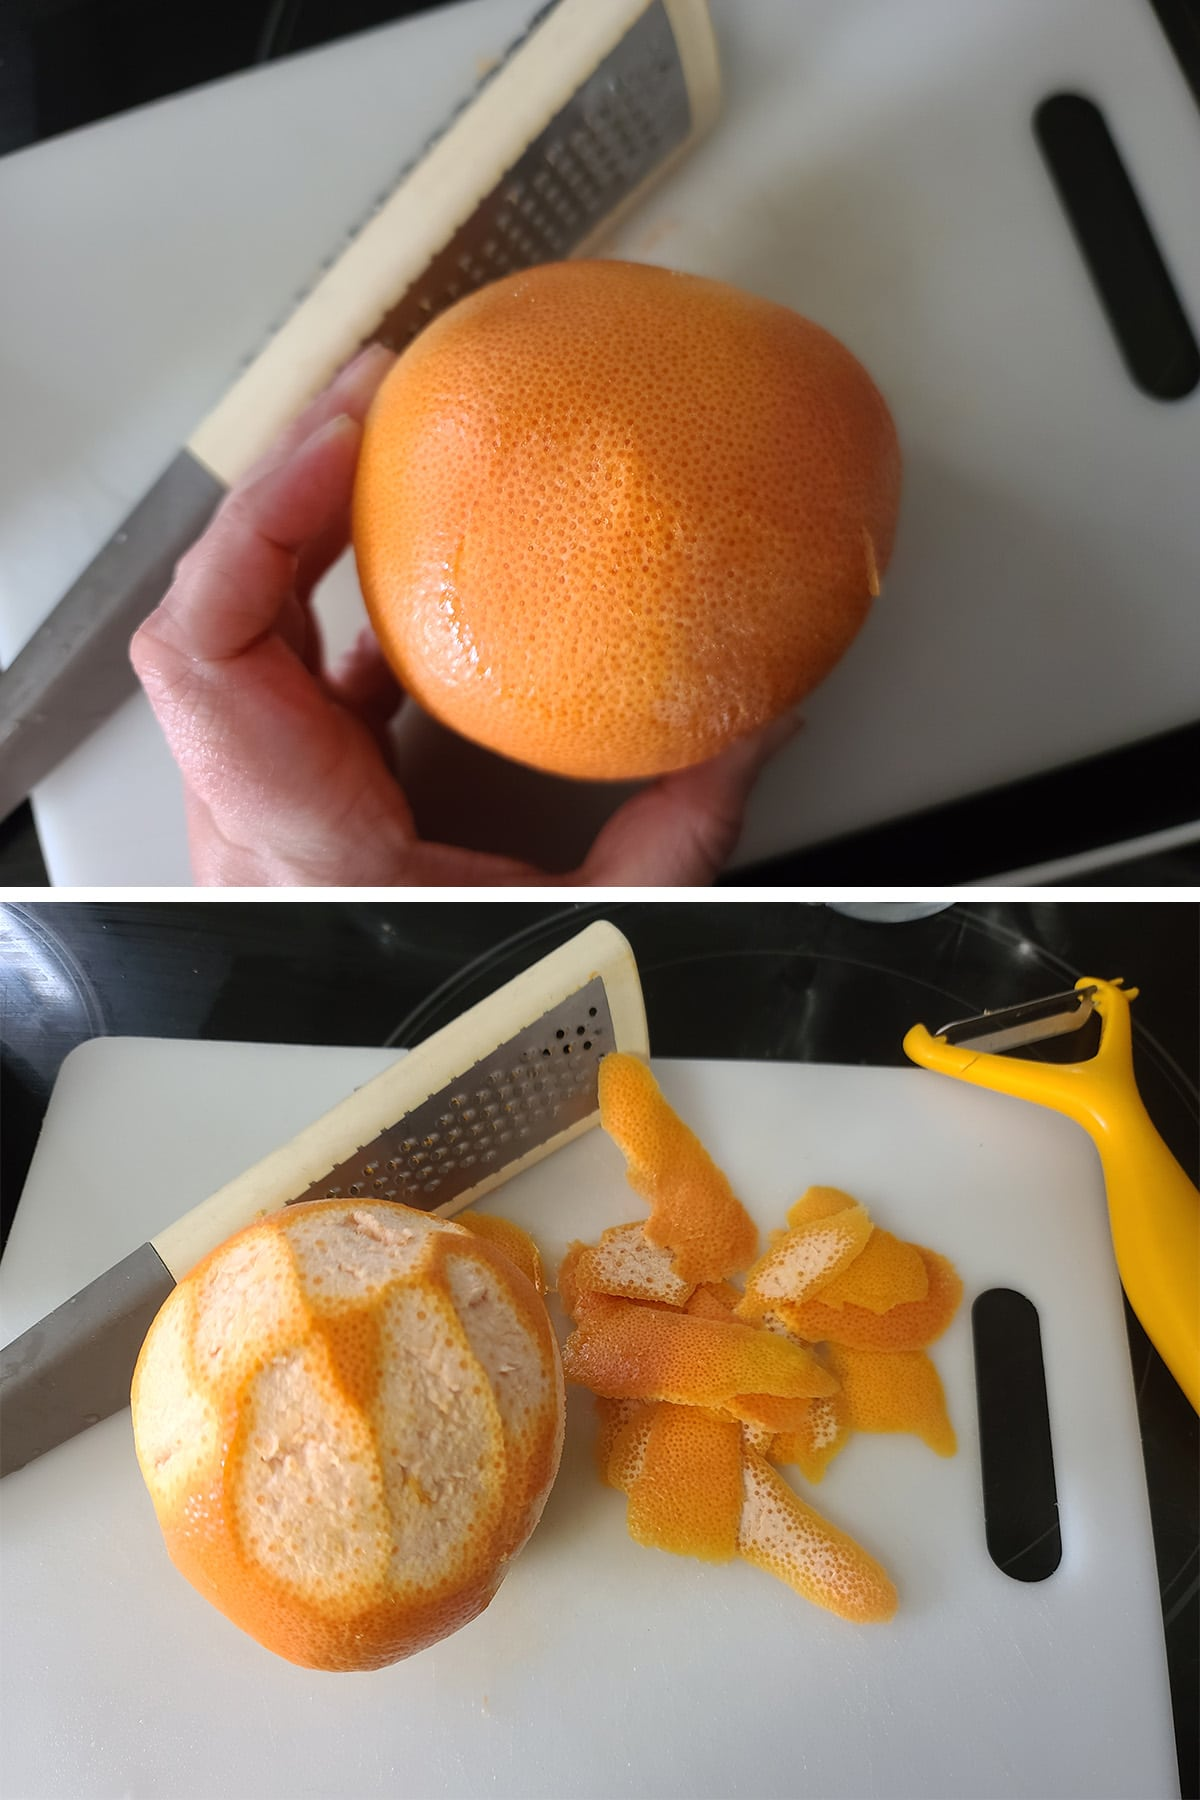 A vegatable peeling being used to get the zest off the grapefruit.